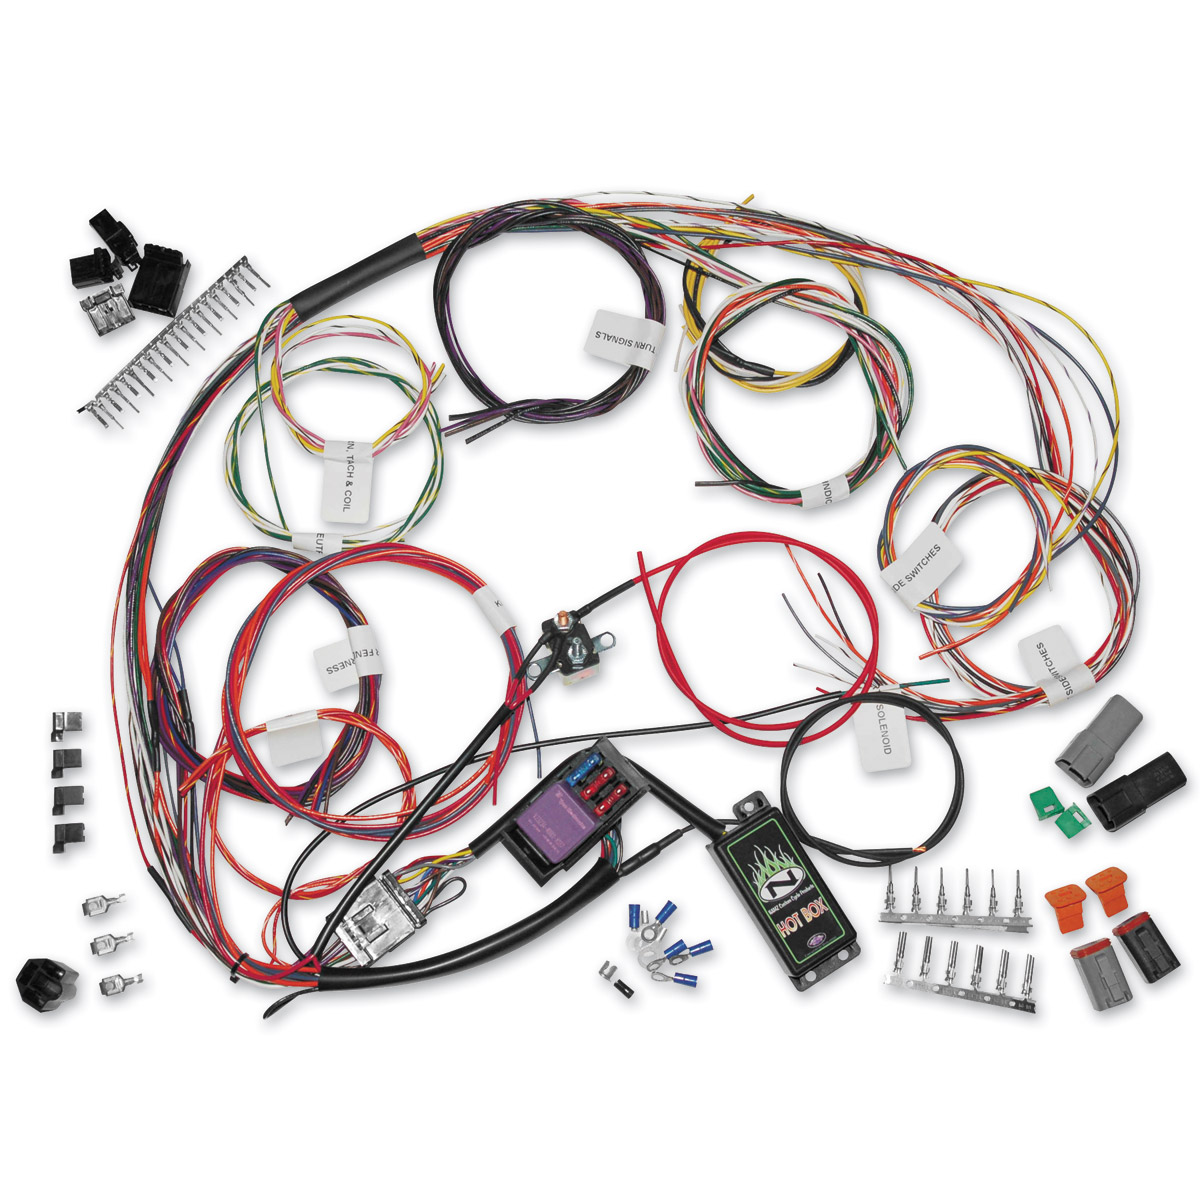 745 072_A harley davidson sportster wiring harness kits j&p cycles harley davidson sportster wiring harness at bayanpartner.co